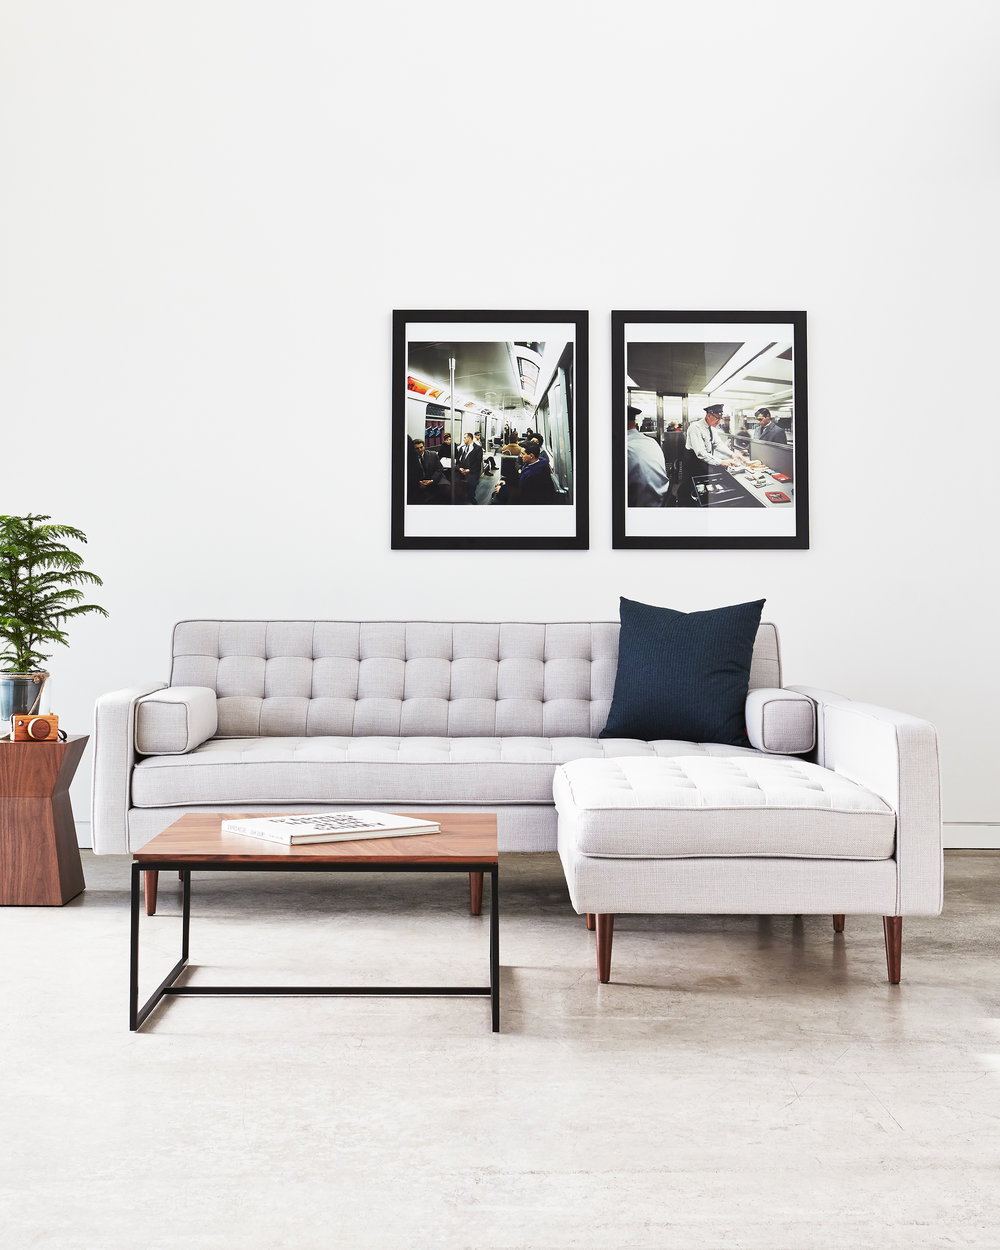 LEGACY MODERN - A wide selection of Vintage, Mid-Century Modern, Industrial, Americana, and Mission Arts and Crafts home furnishings in Portland, Oregon.